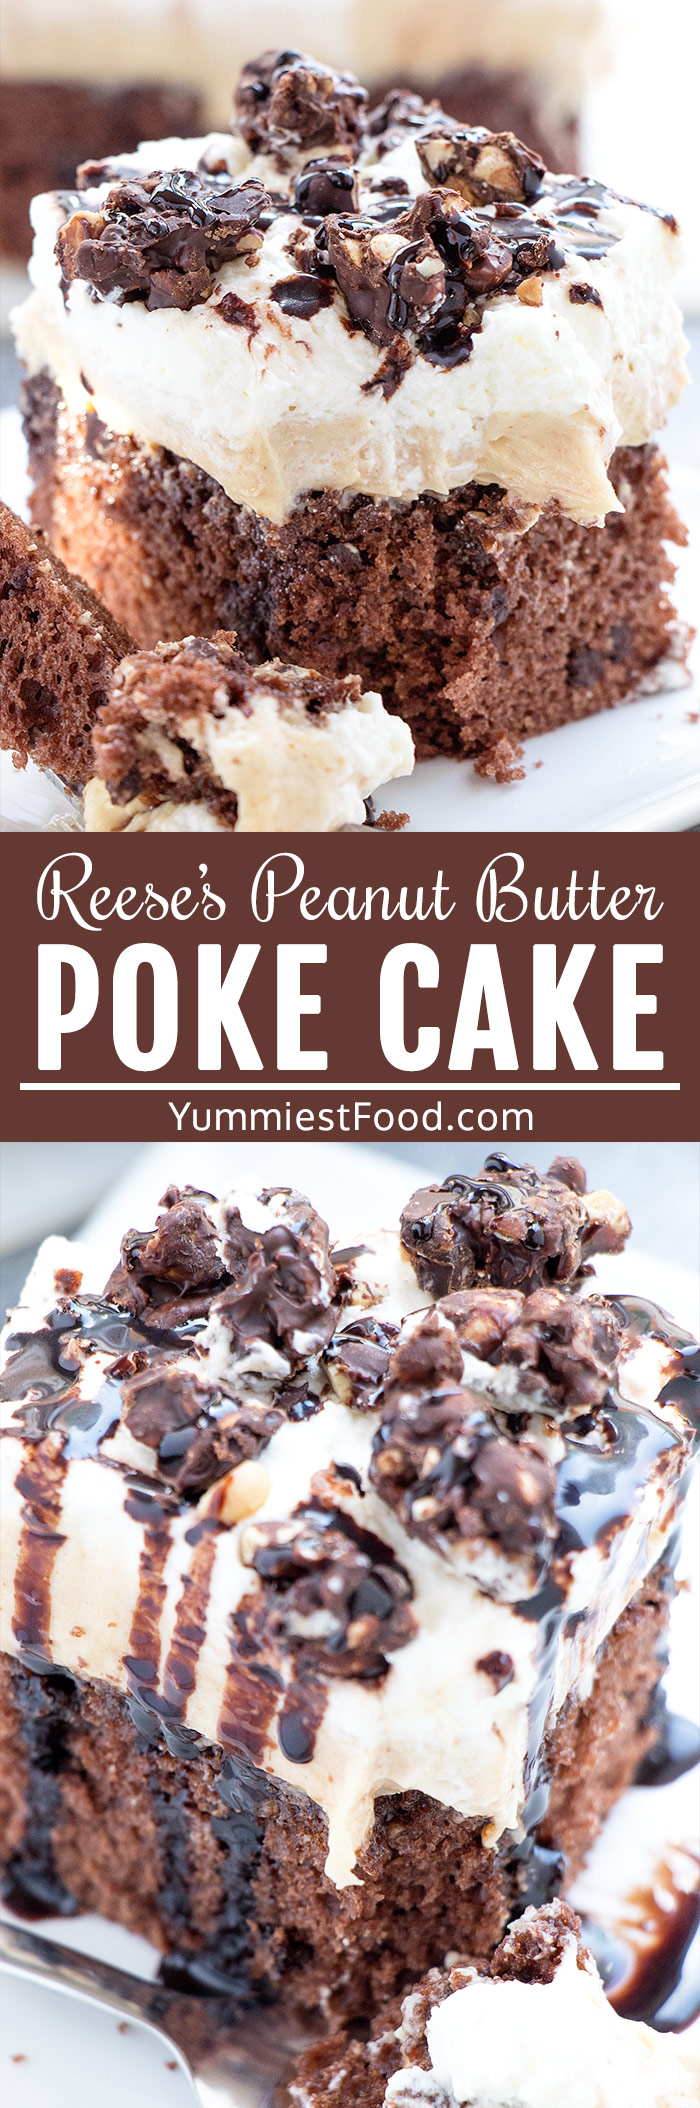 Reese's Peanut Butter Poke Cake is an easy summer dessert perfect for parties and potlucks